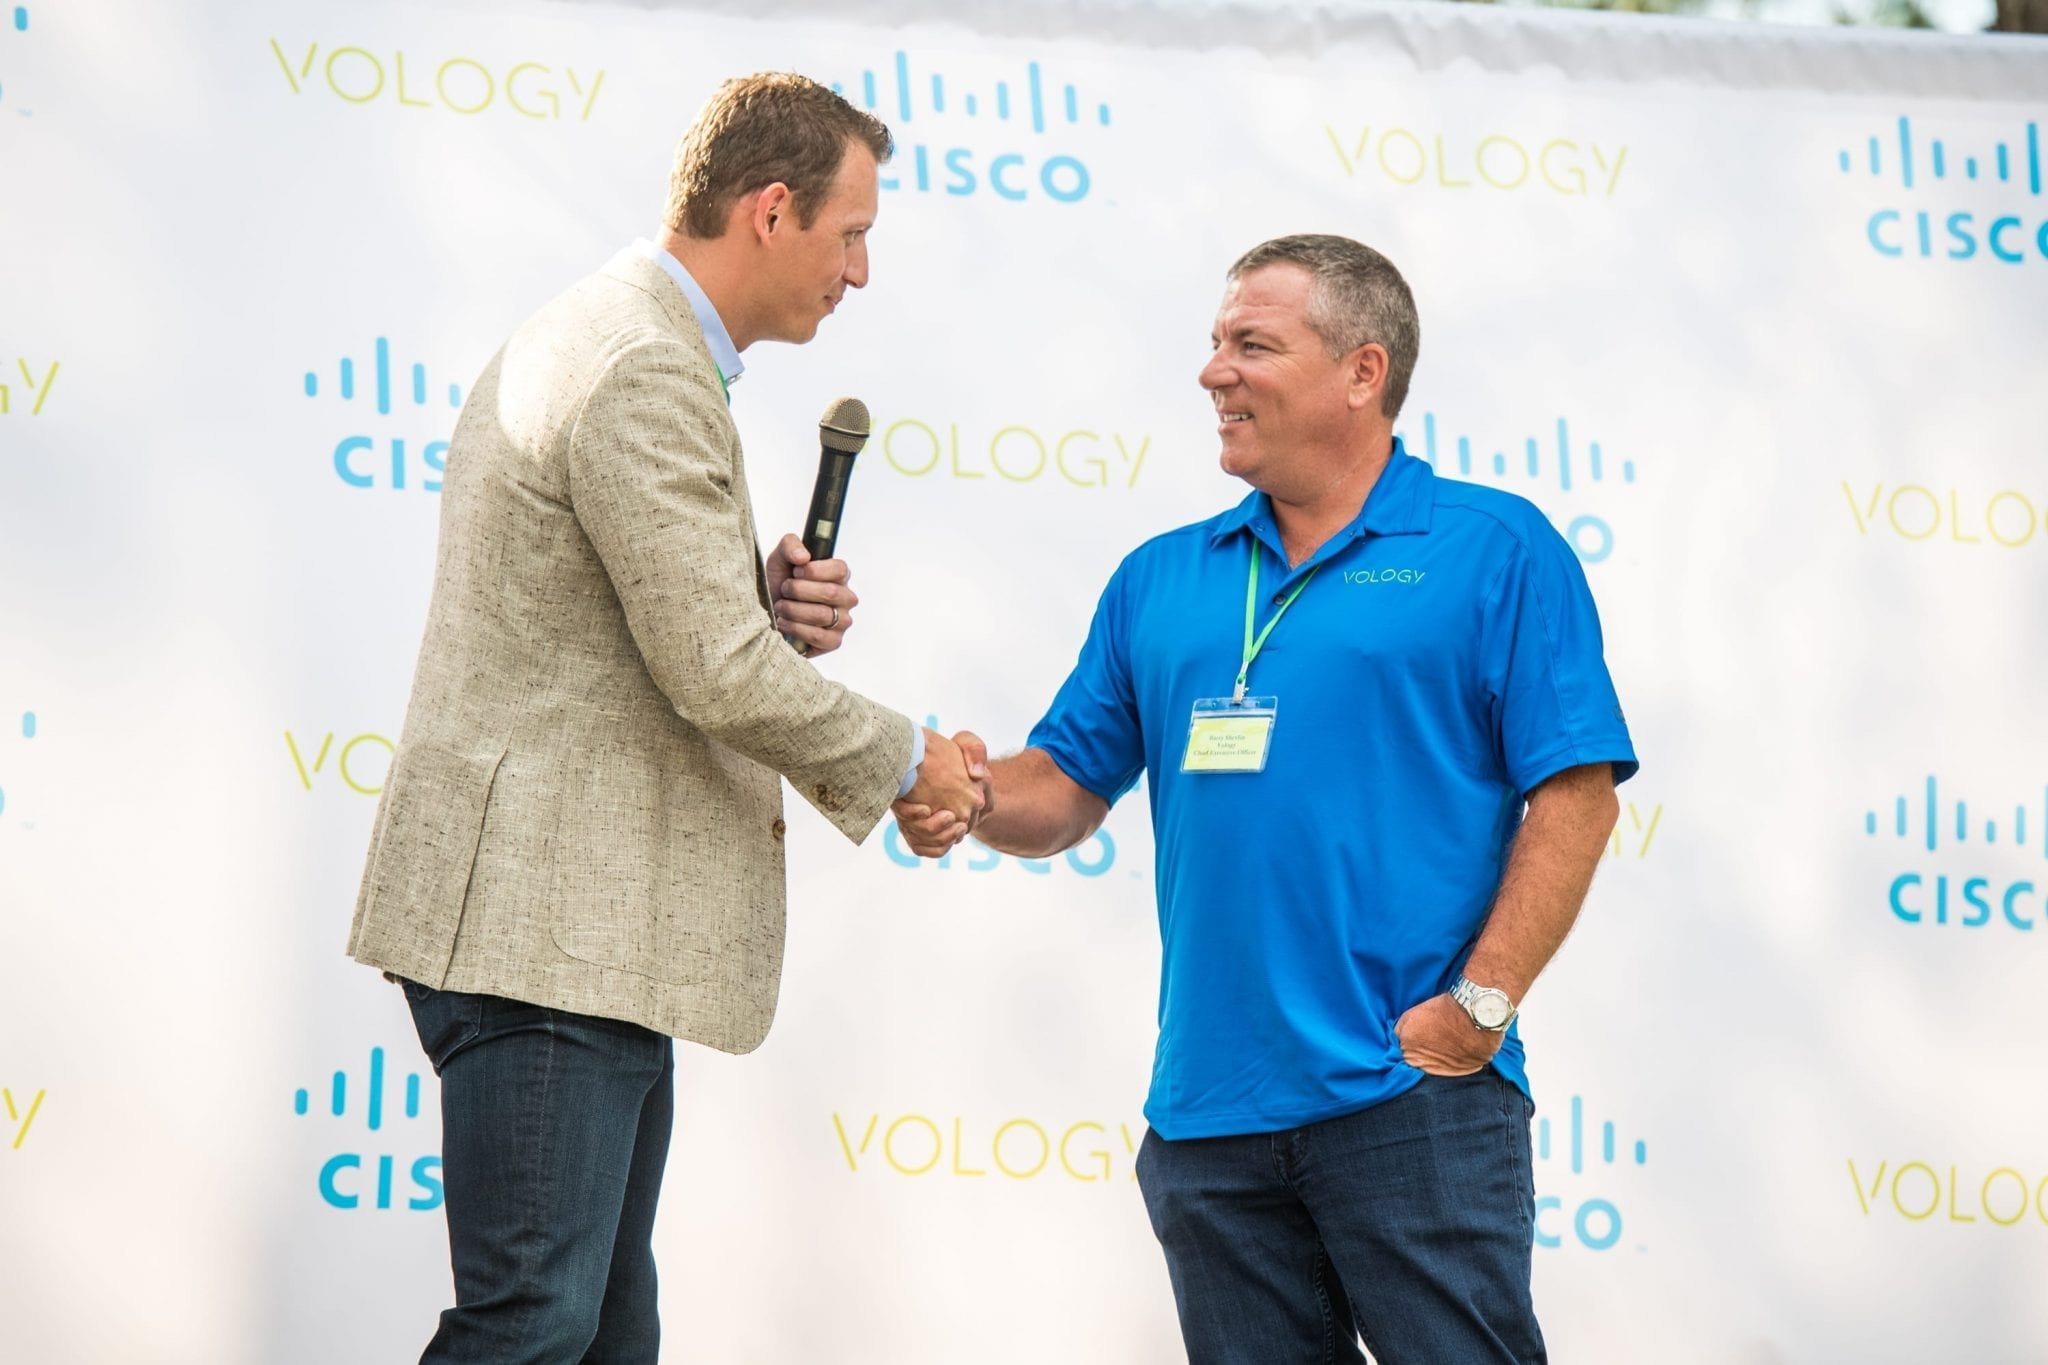 Vology - Cisco's Rick Hill presents Vology CEO Barry Shevlin